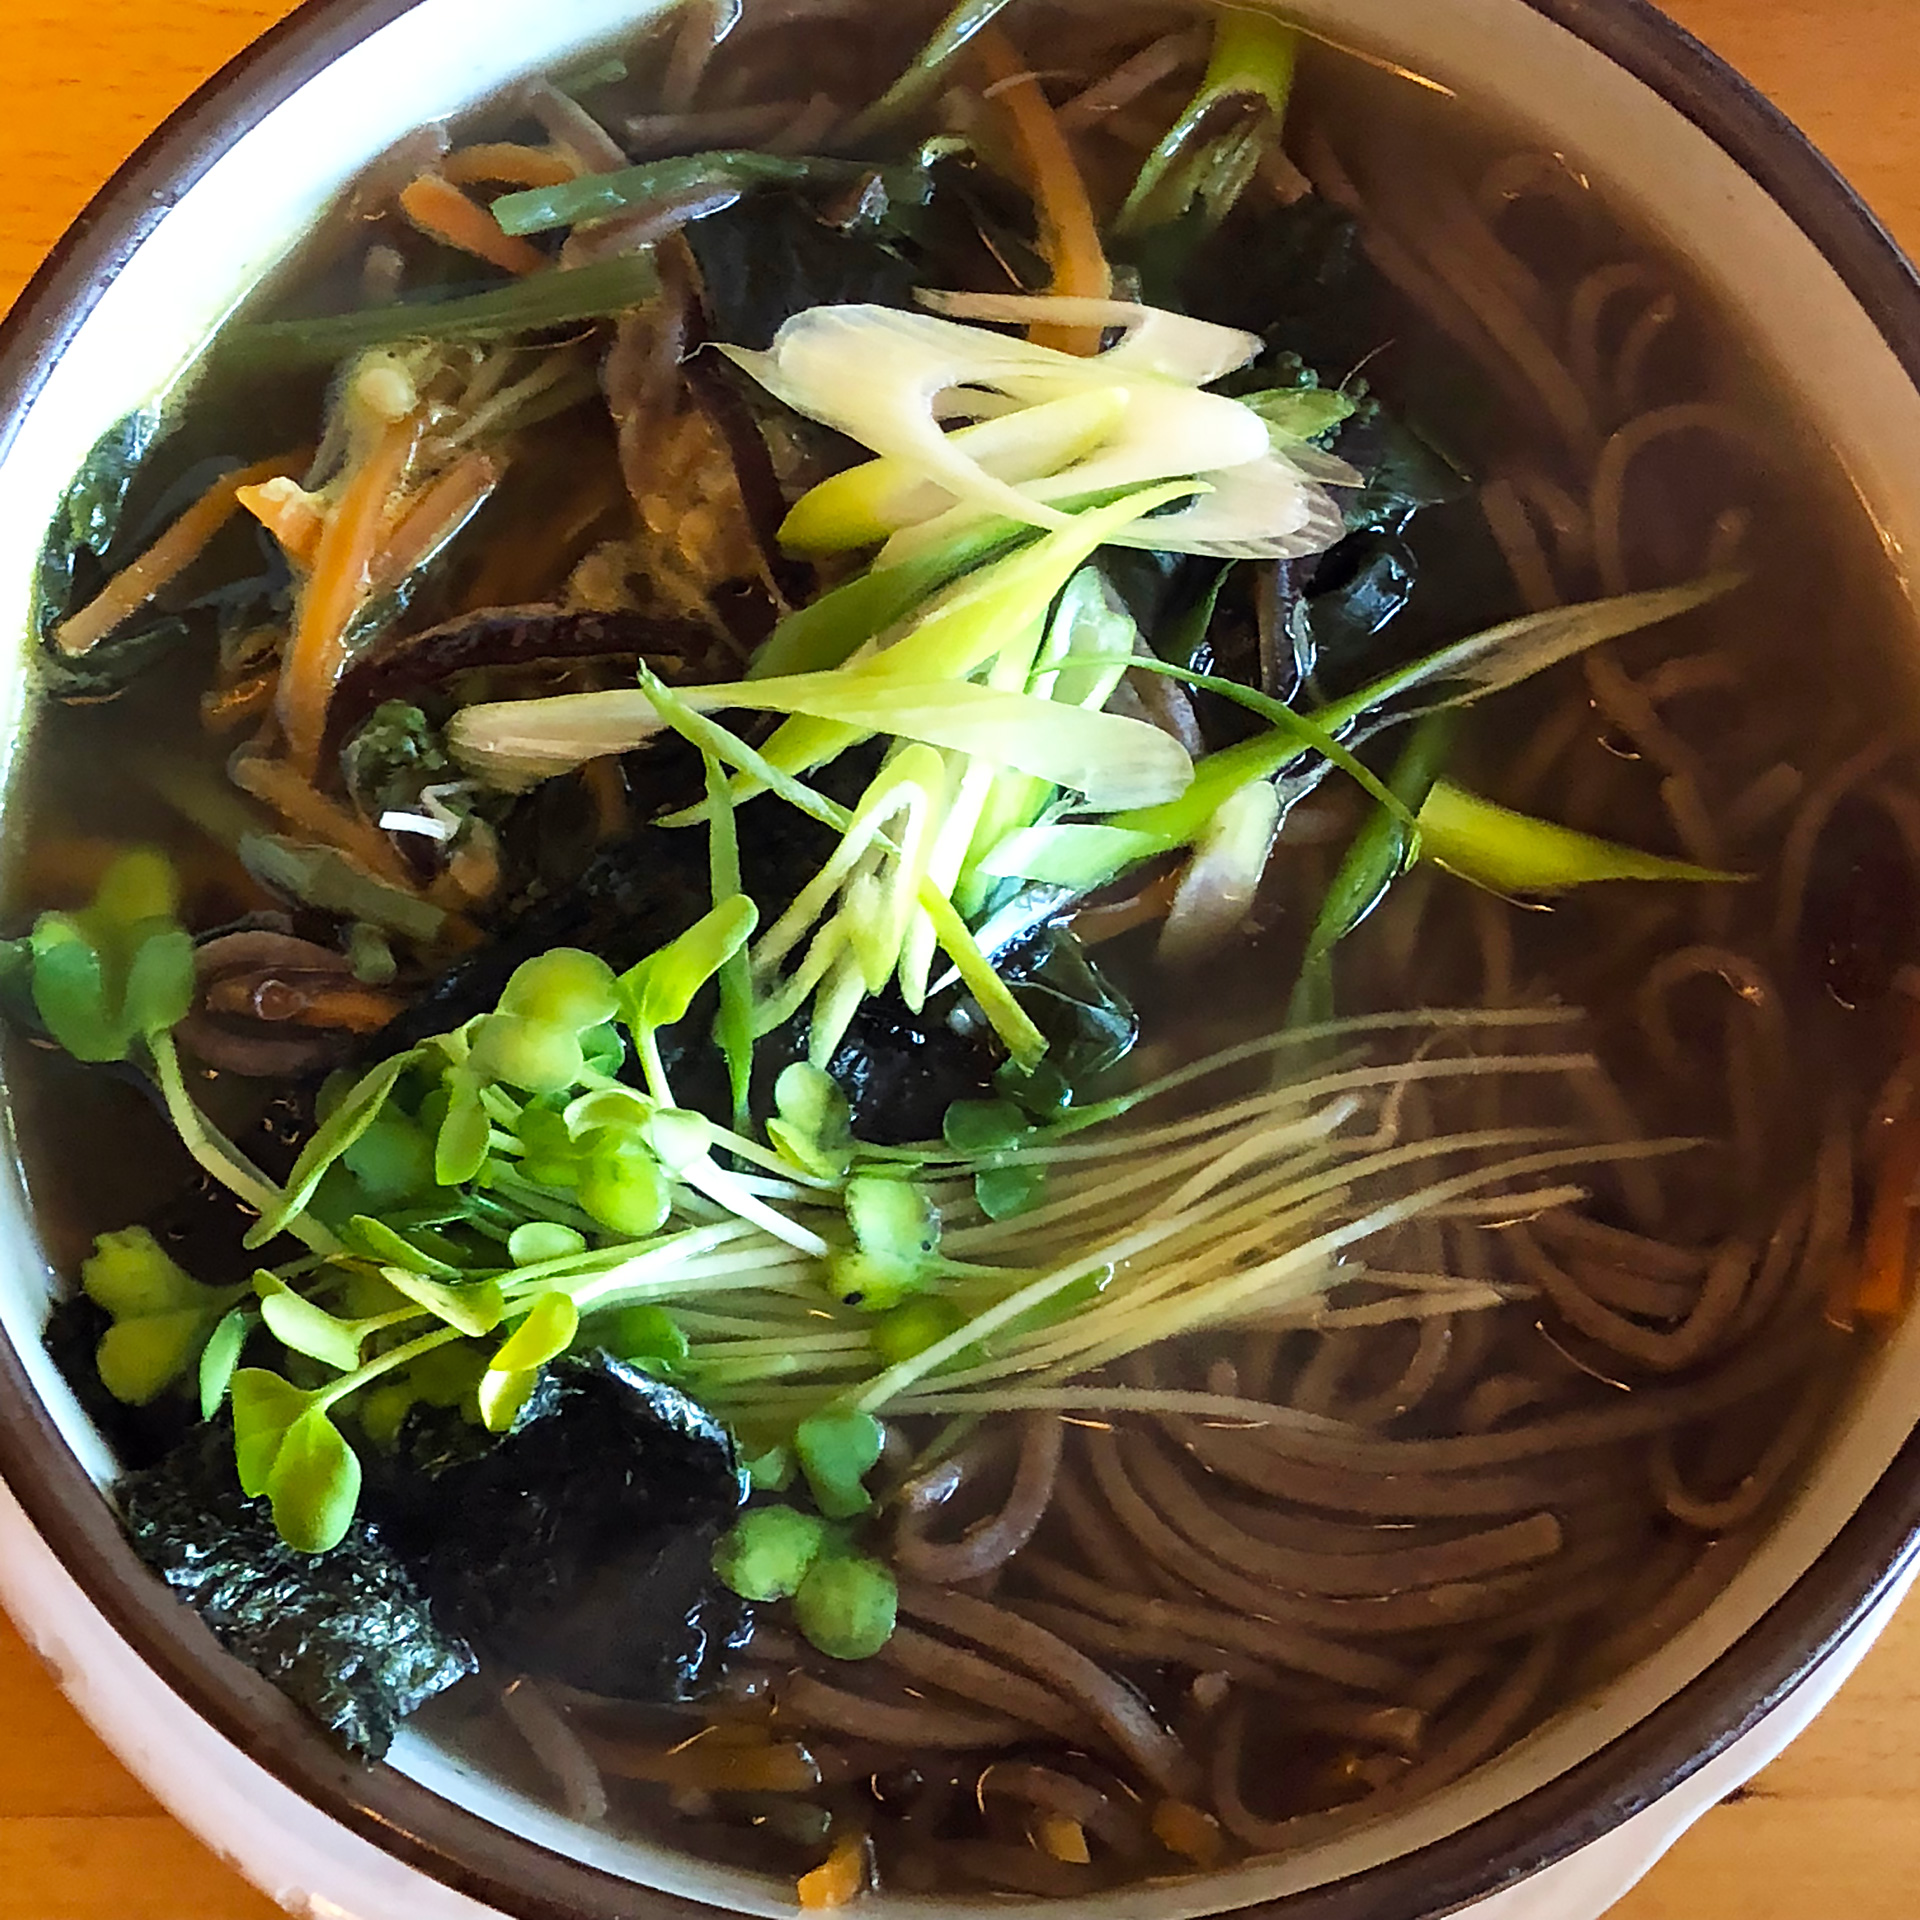 Sansai Noodle Soup: Soba noodles, wild mountain vegetables, bracken, bamboo shoots, wood ear mushrooms, carrots, enoki. ($12)